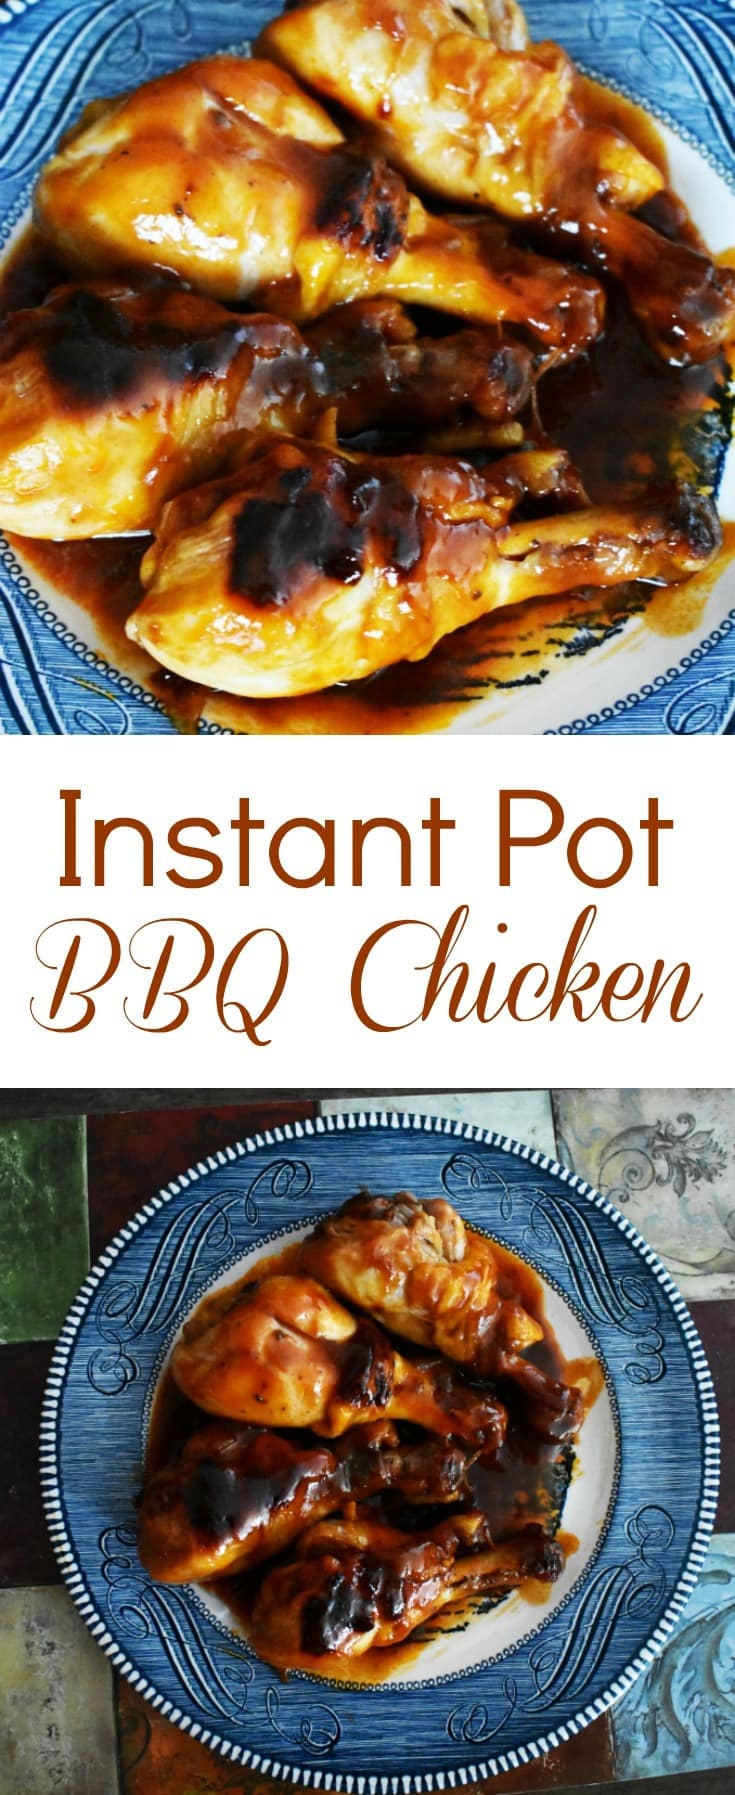 a collage of bbq chicken on a blue plate with title text reading Instant Pot BBQ Chicken